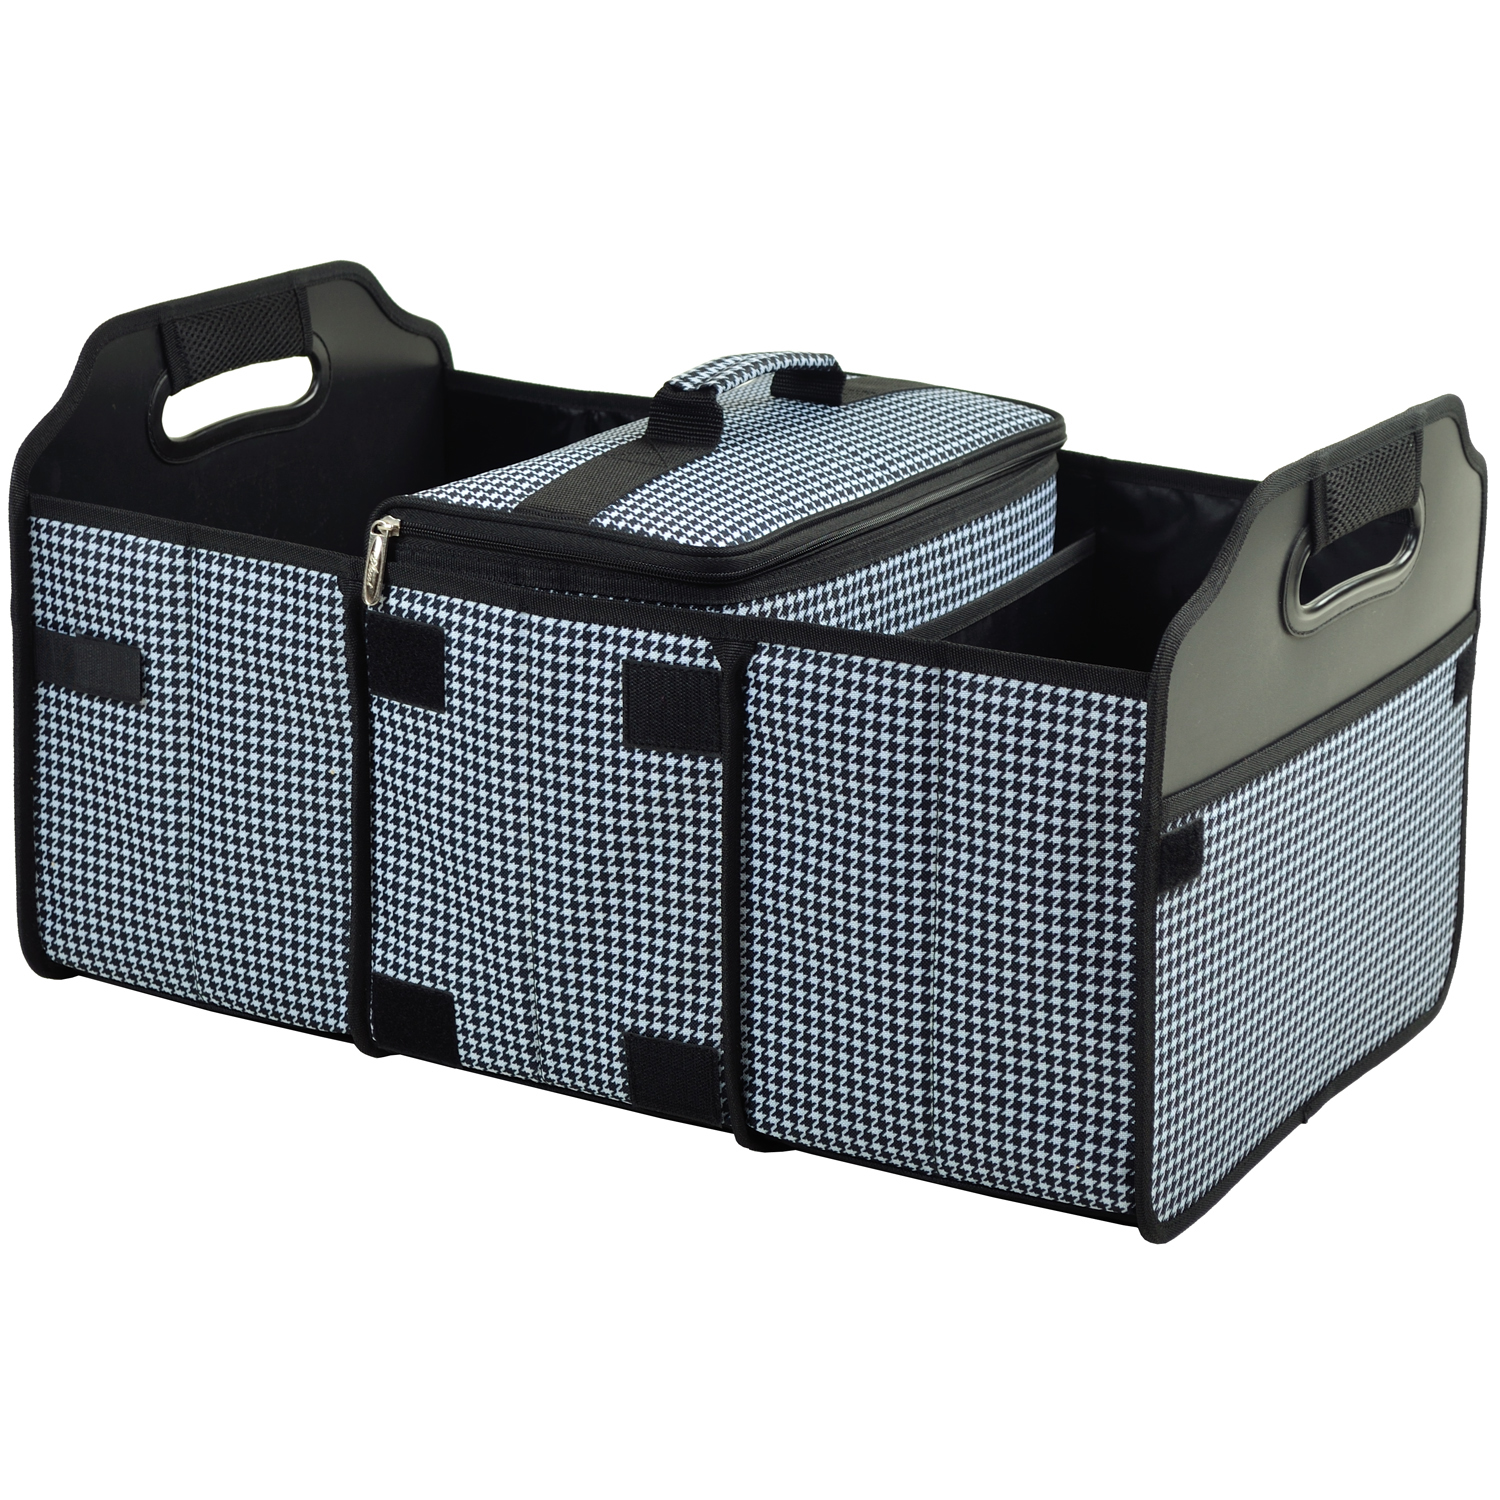 Picnic At Ascot Trunk Organizer And Cooler Set Houndstooth